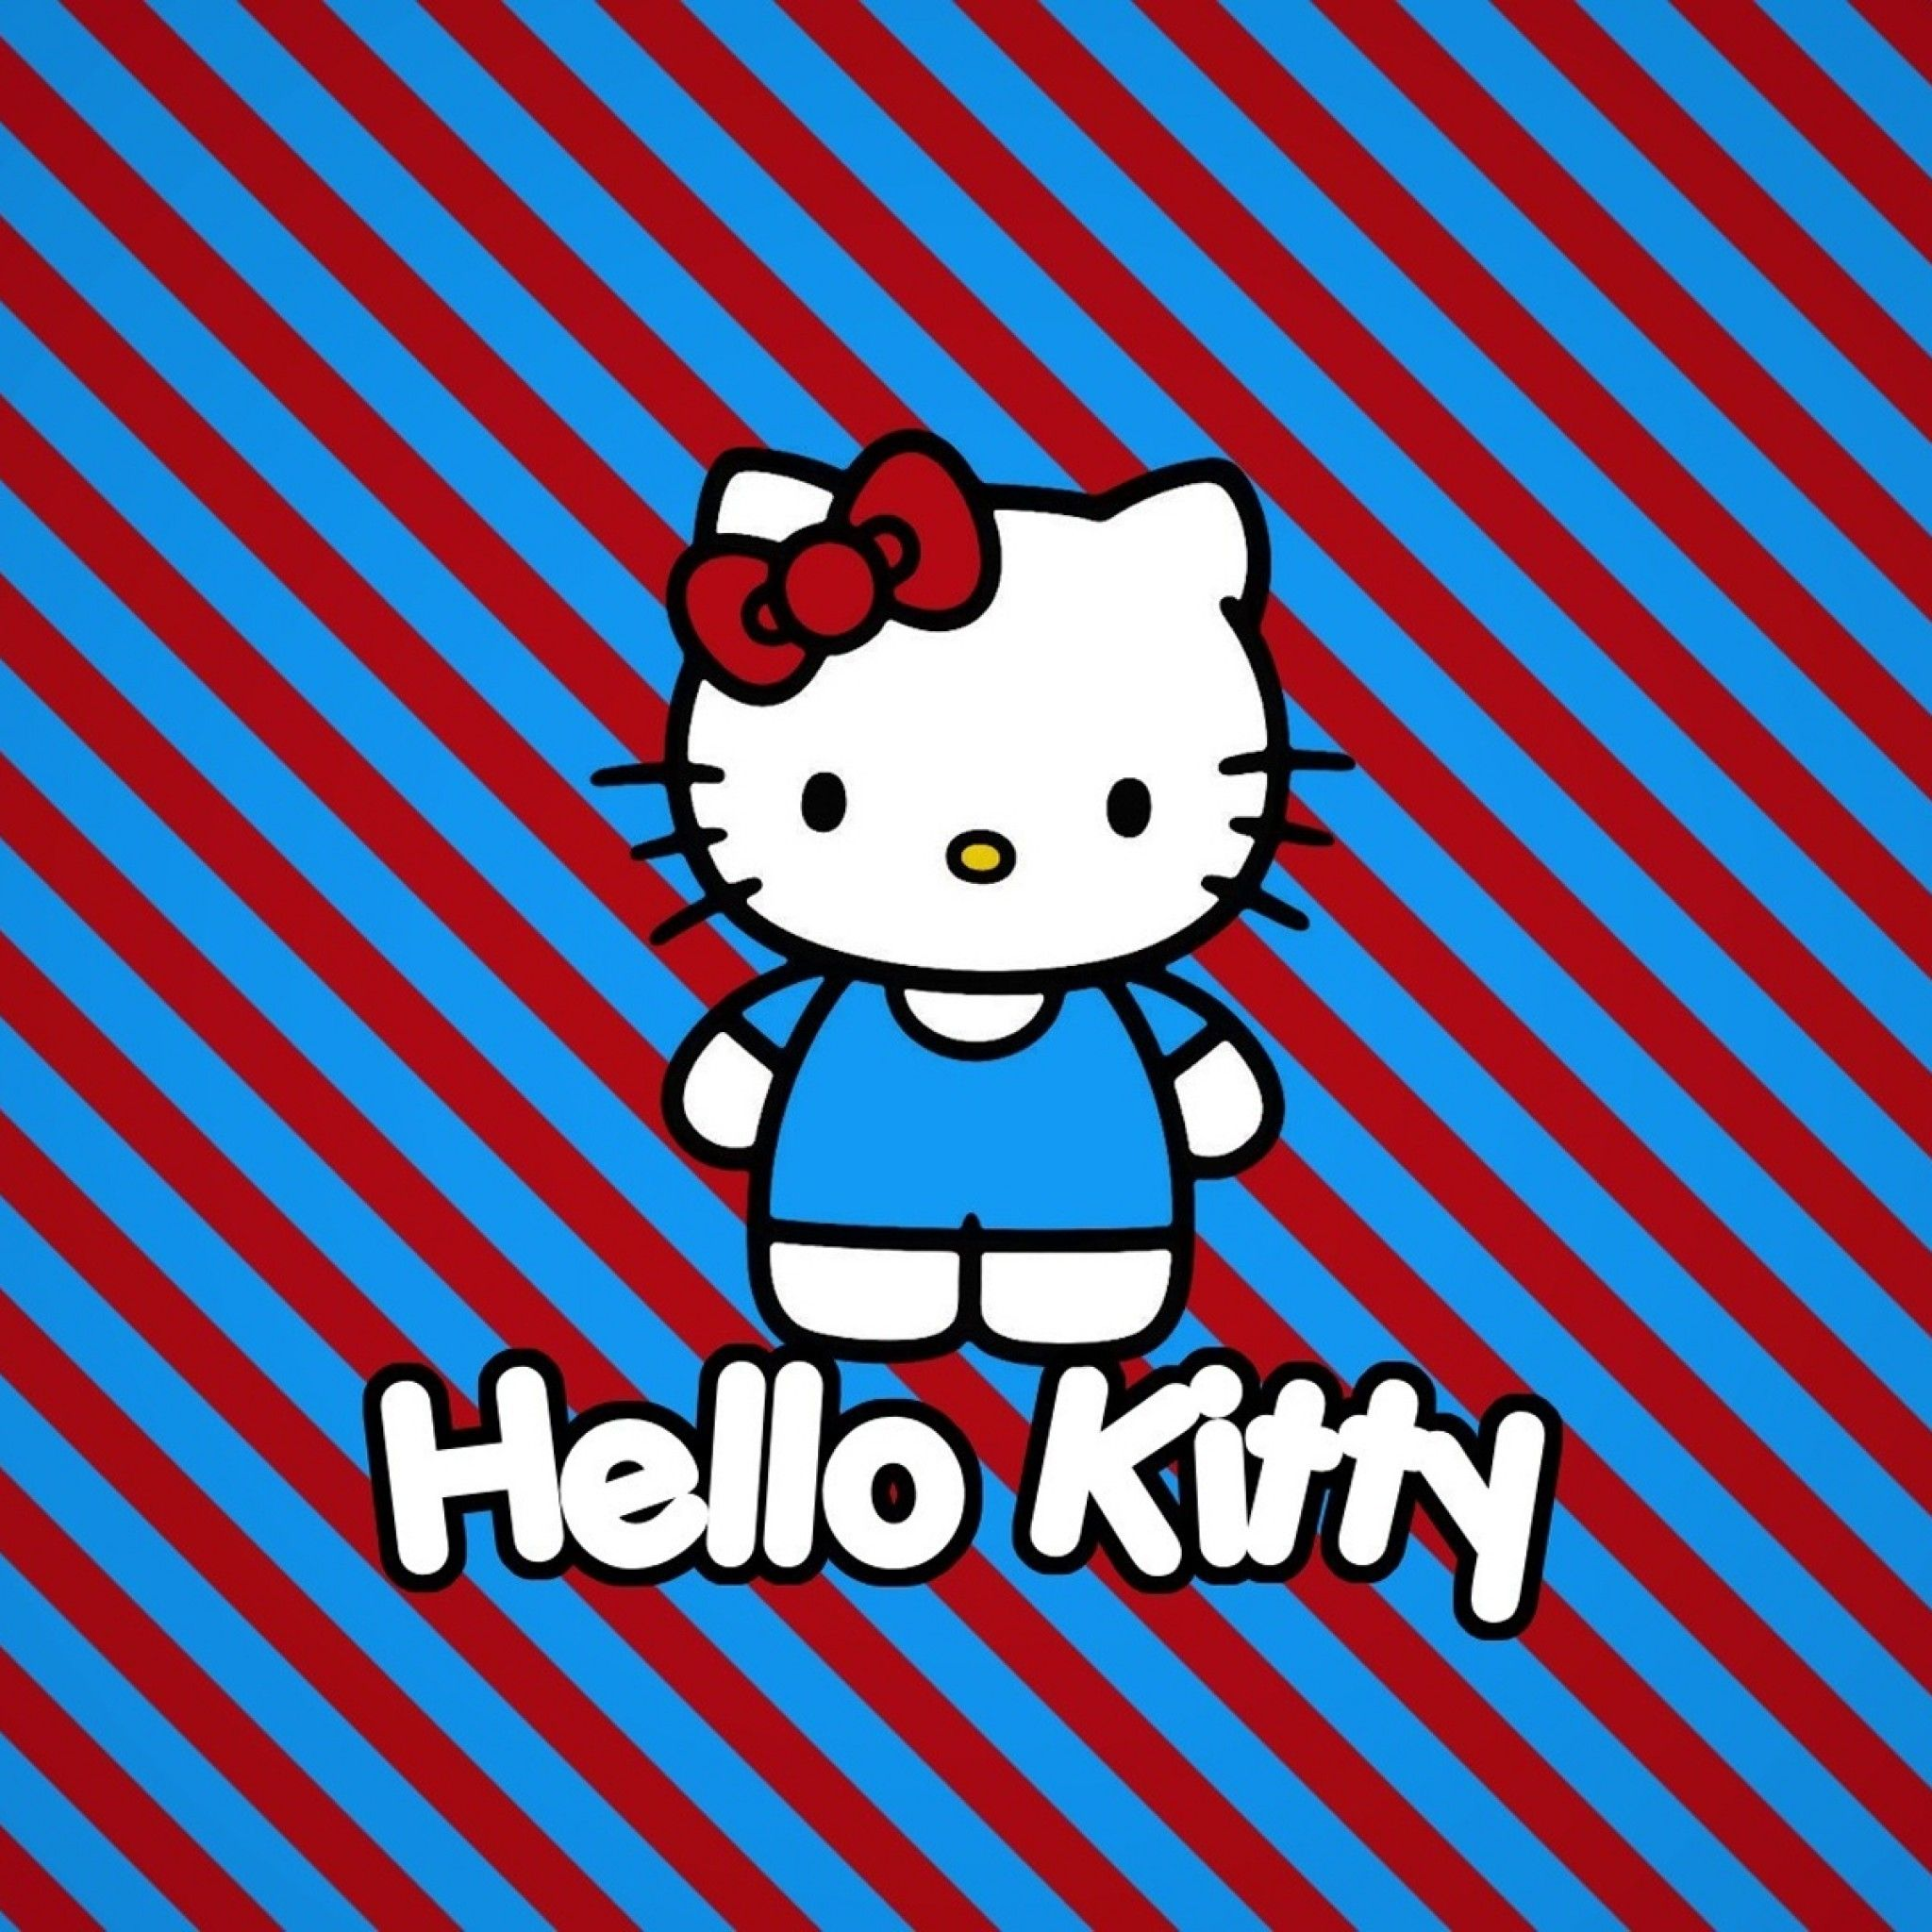 Cool Wallpaper Hello Kitty Ipad - 46c3bd5c8879986bfe242c0093852b40  Image_232757.jpg